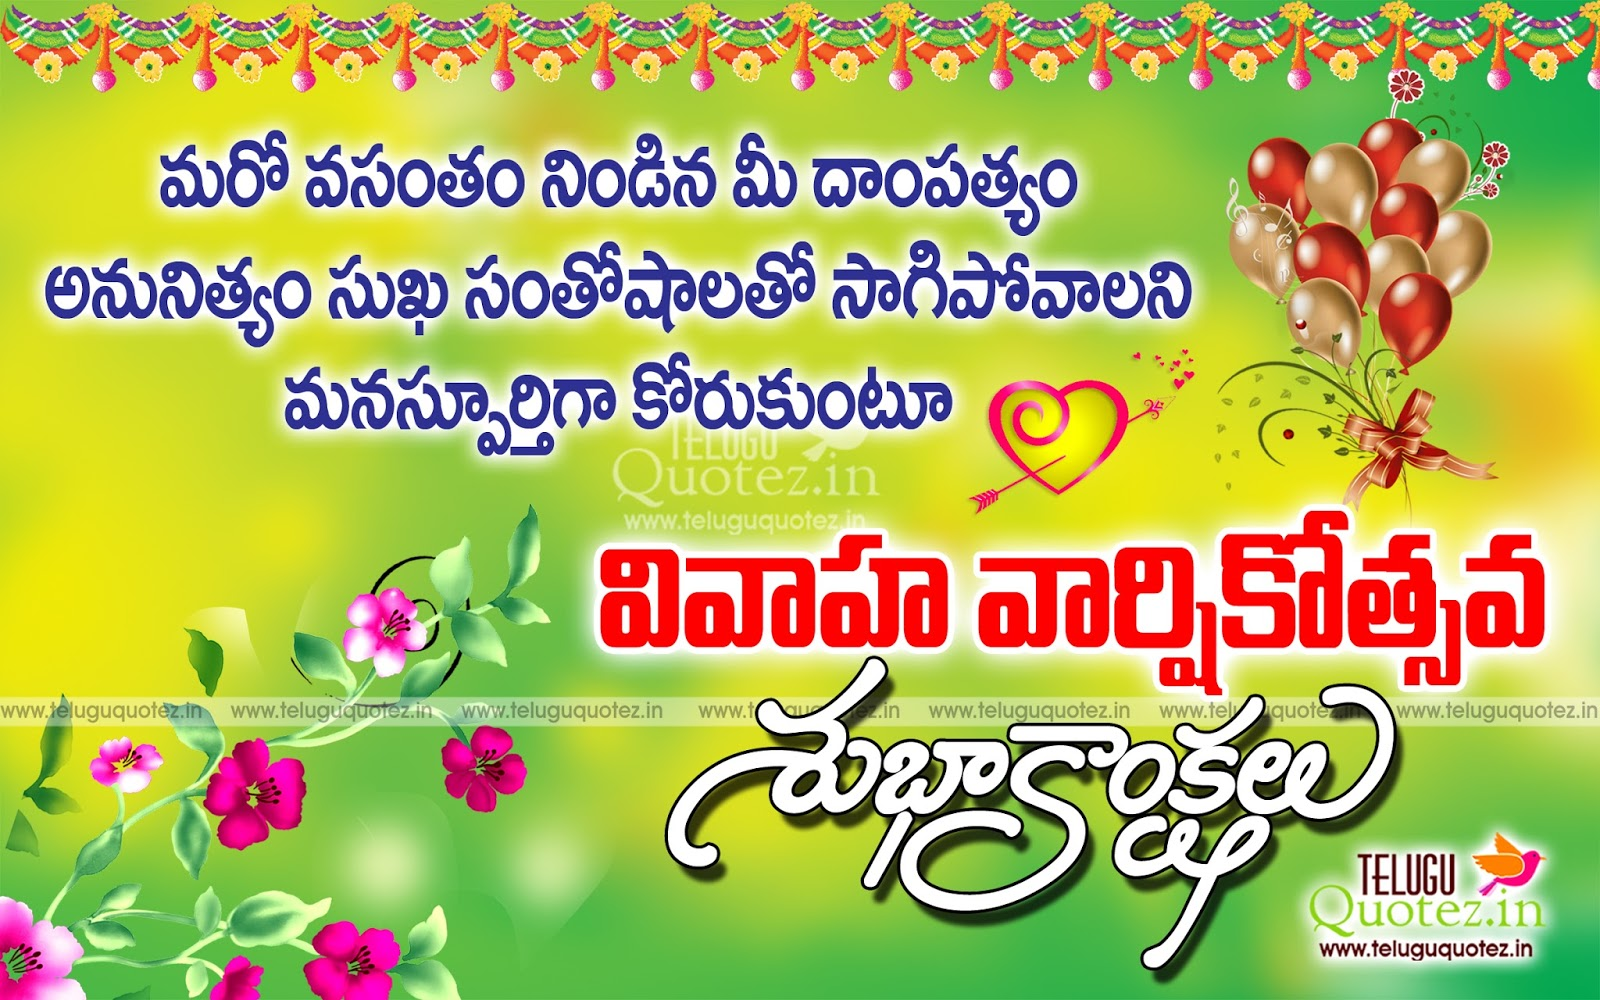 Happy Married Life Wishes Sms In Telugu